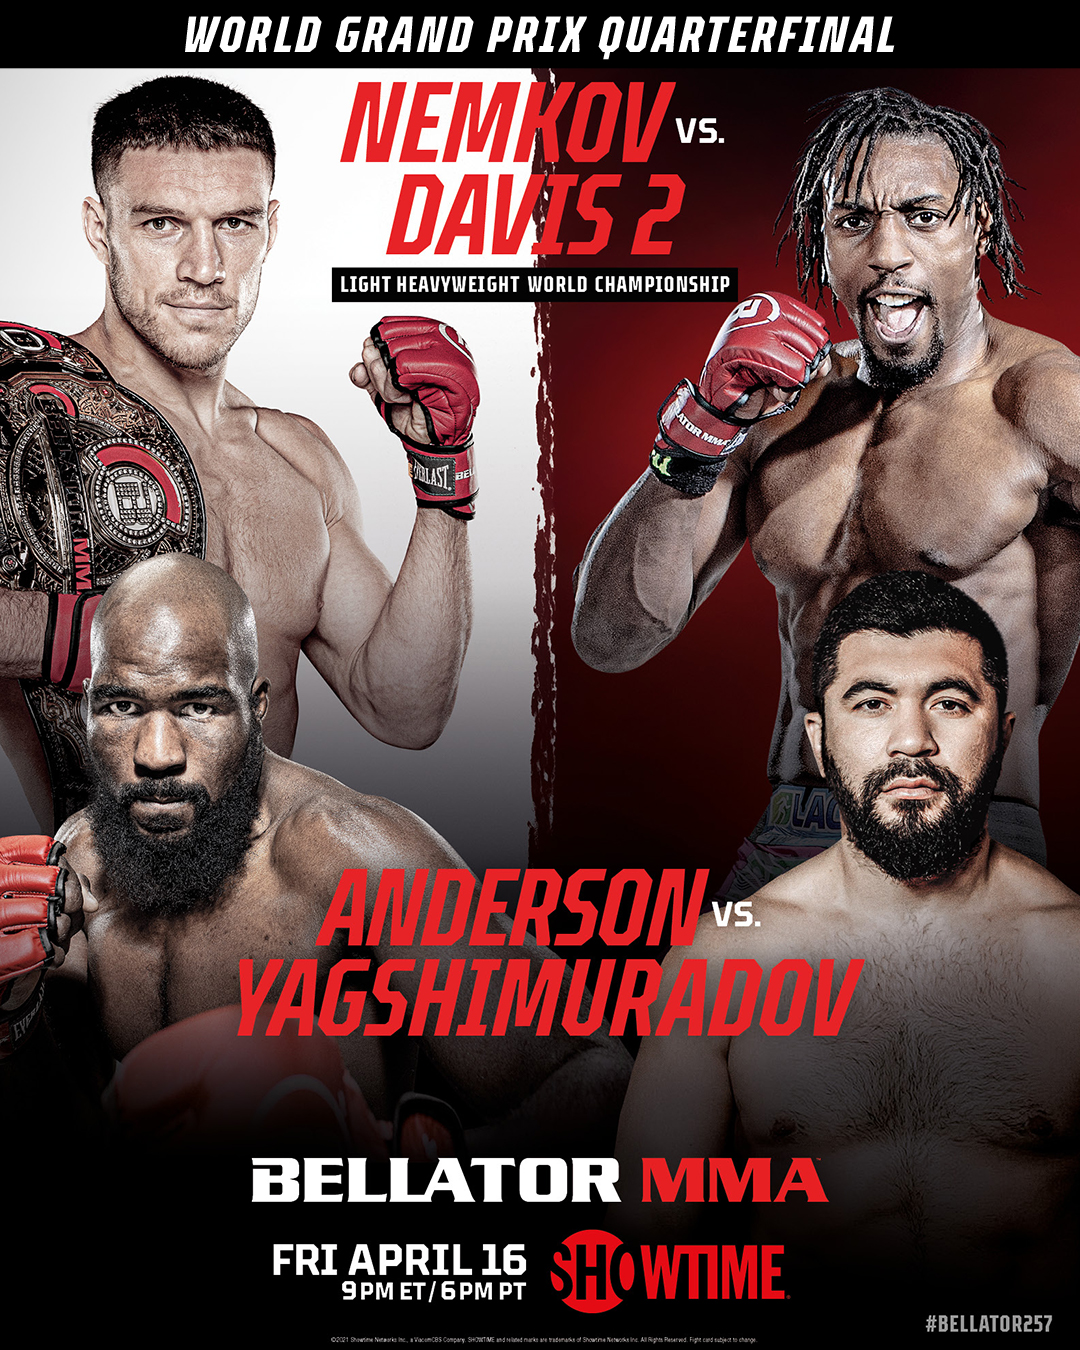 "BellatorMMA в Twitter: ""I T ' S F I G H T W E E K ! Fight week is upon us  and the #BellatorLHWGP will roll on this Friday, April 1️⃣6️⃣th at  #Bellator257 LIVE on @SHOSports. #MMA #BellatorOnShowtime…  https://t.co/ONFmNuyba2"""